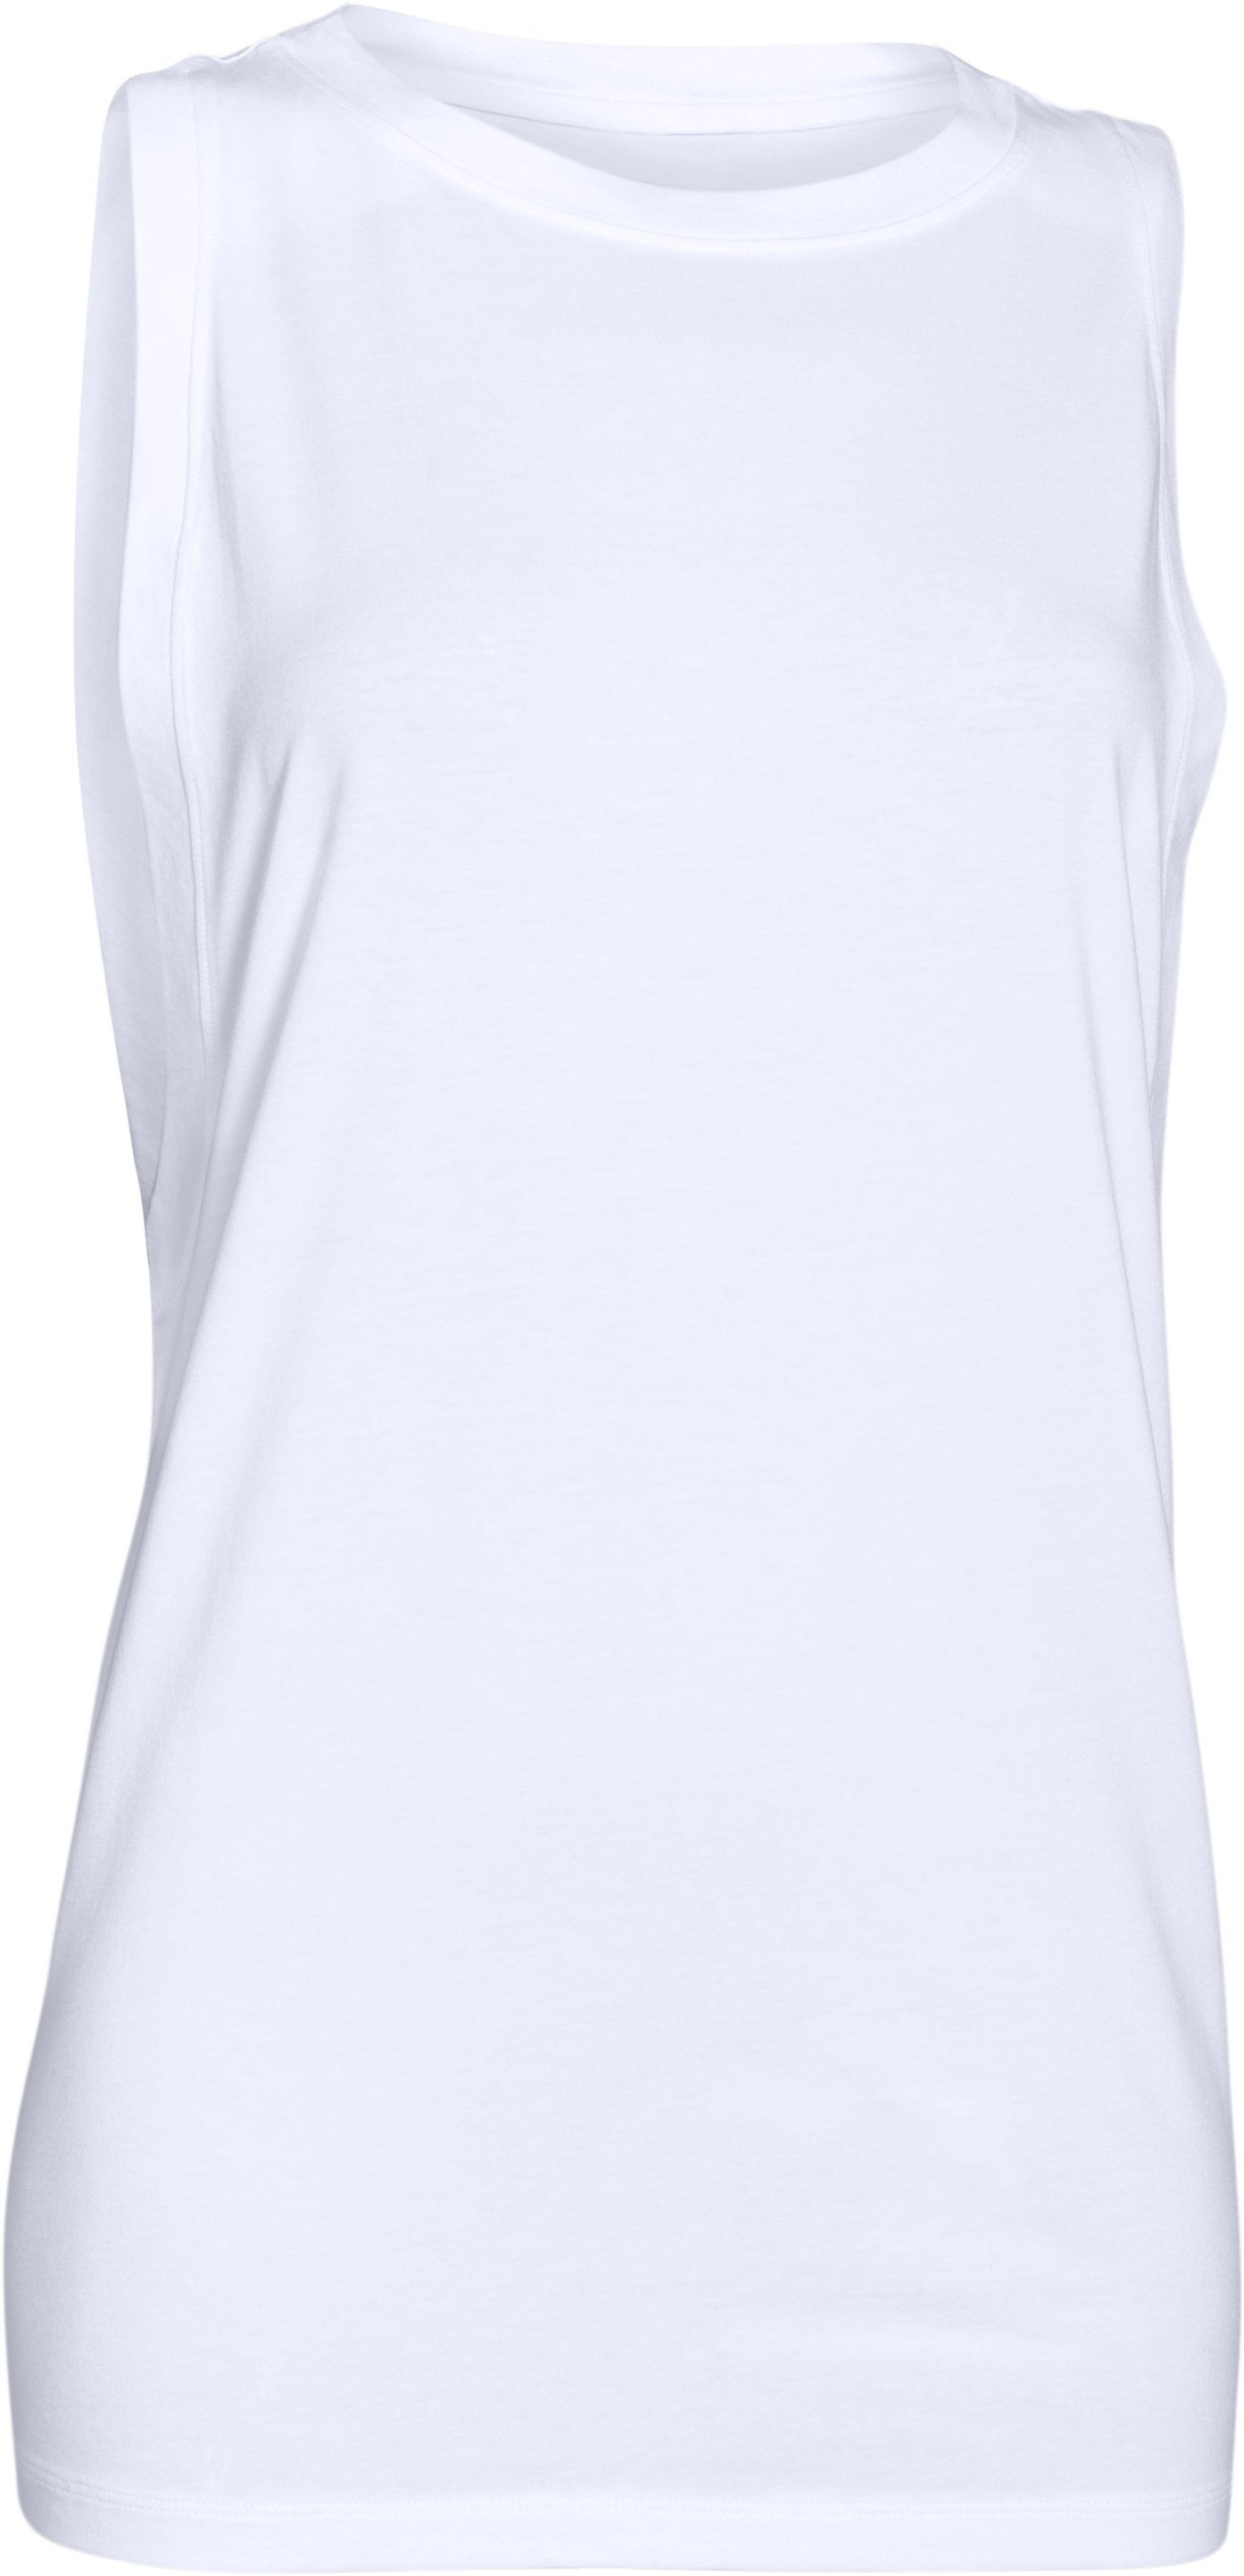 Resting Gym Face Muscle Tank, White, undefined